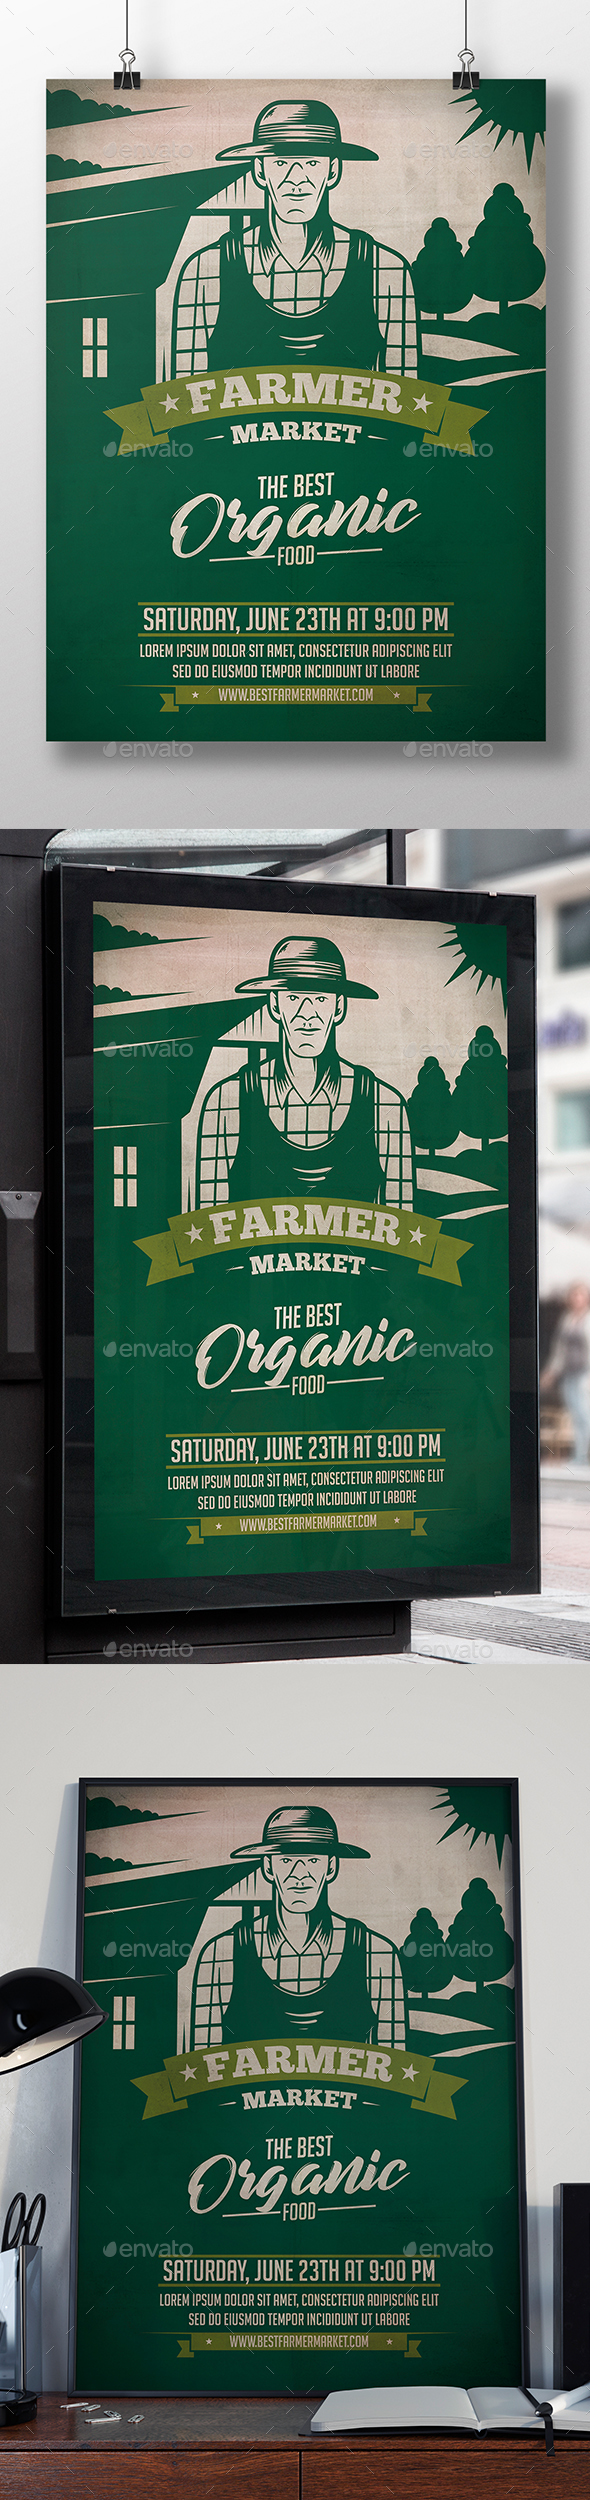 Farmer Market Flyer Template - Events Flyers